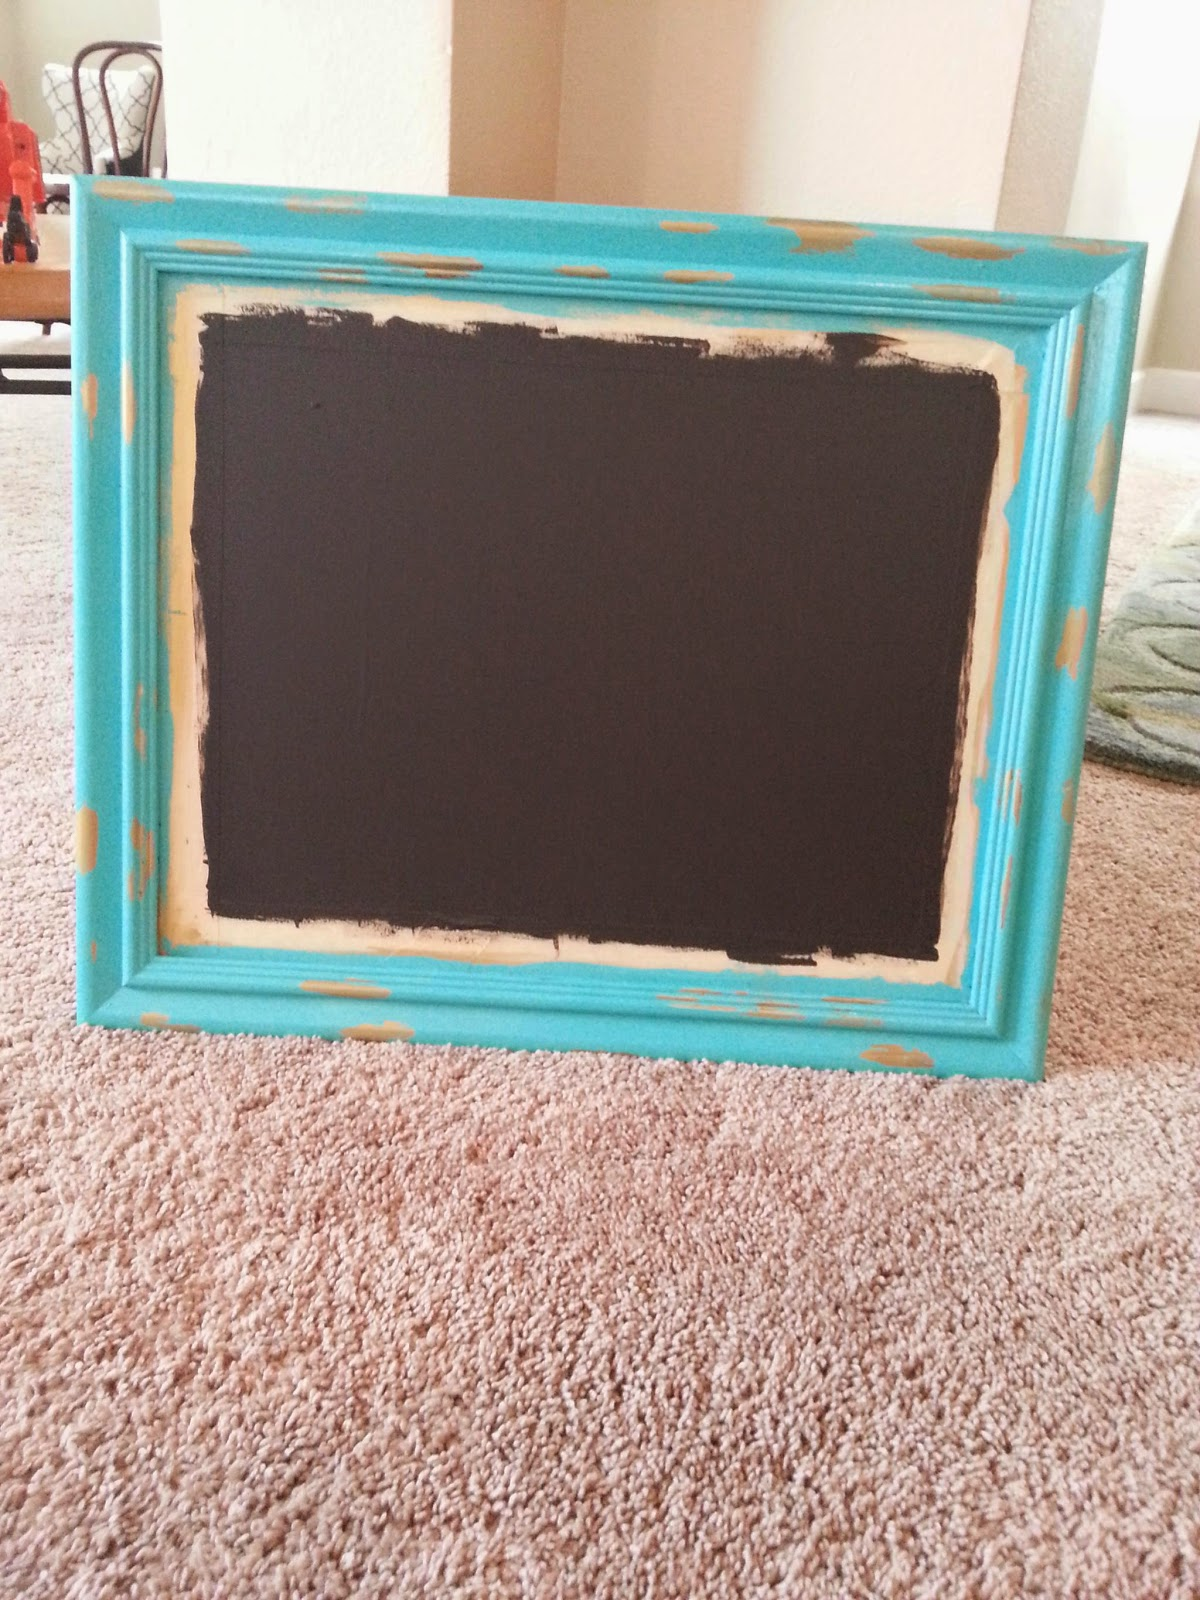 Chalkboards So Much To Make